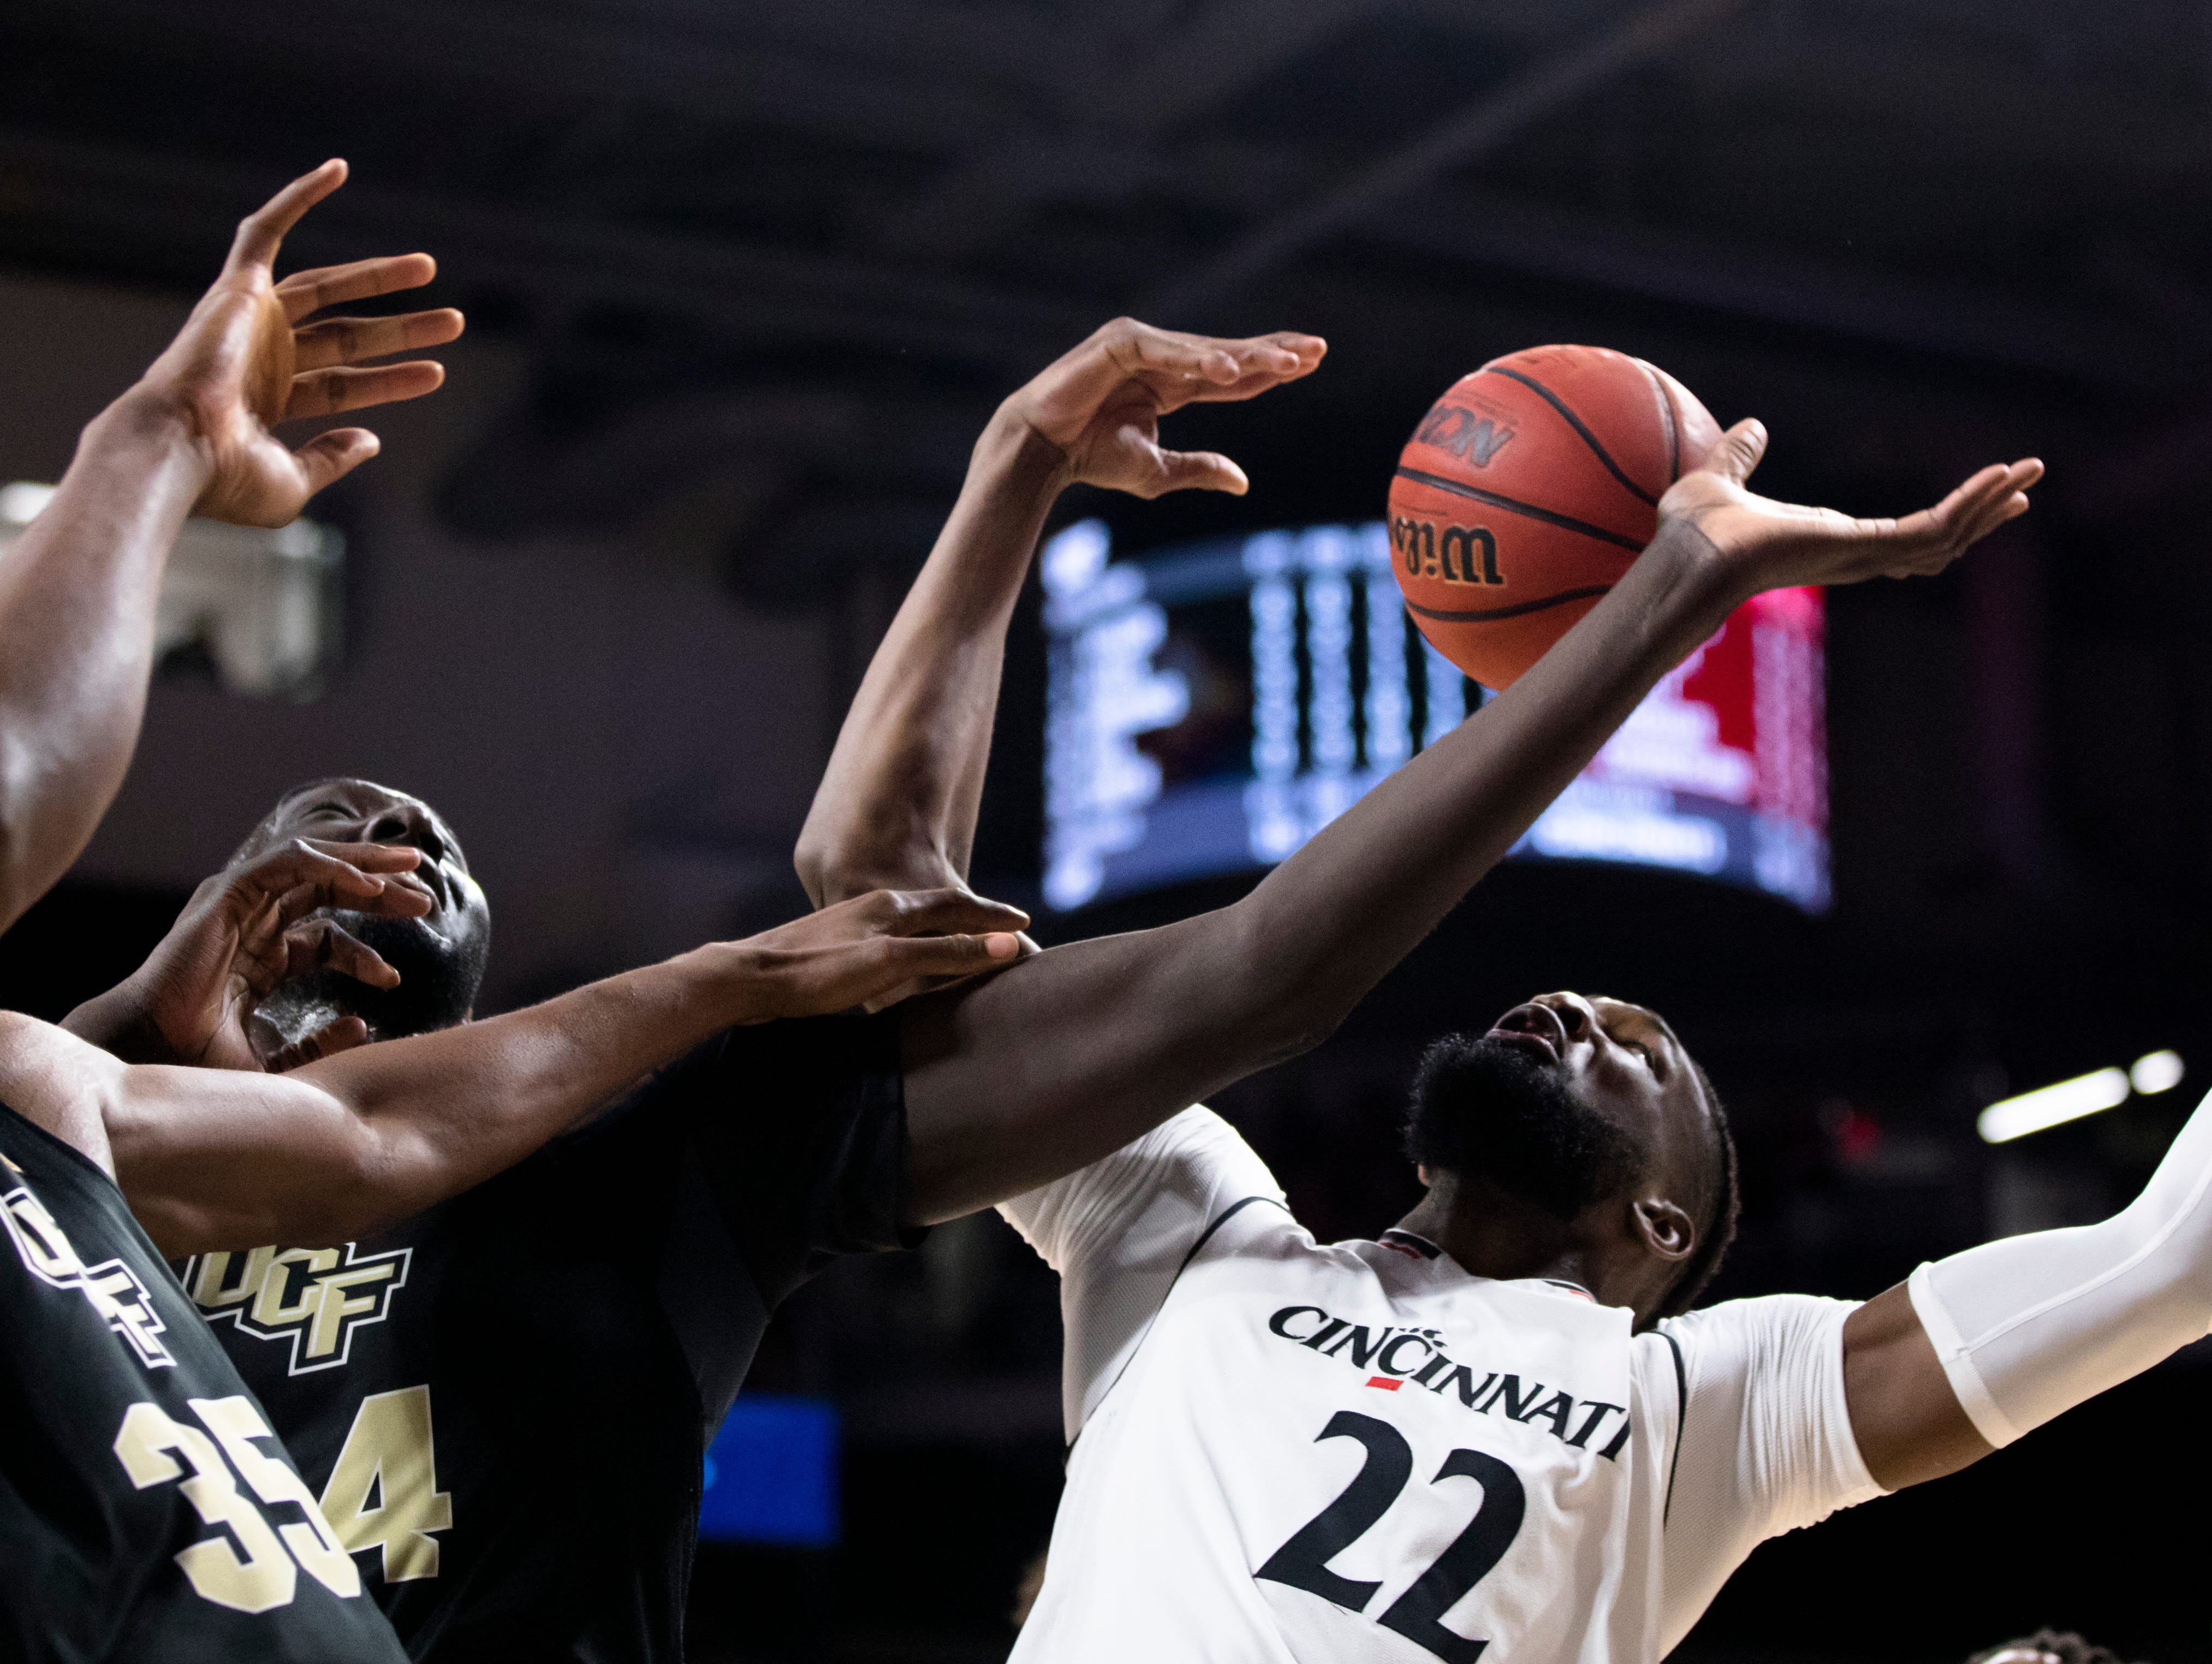 Cincinnati Bearcats forward Eliel Nsoseme (22) fights for a rebound with UCF Knights center Tacko Fall (24) in the first half of the NCAA men's basketball game between Cincinnati Bearcats and UCF Knights on Thursday, Feb. 21, 2019, at Fifth Third Arena in Cincinnati.